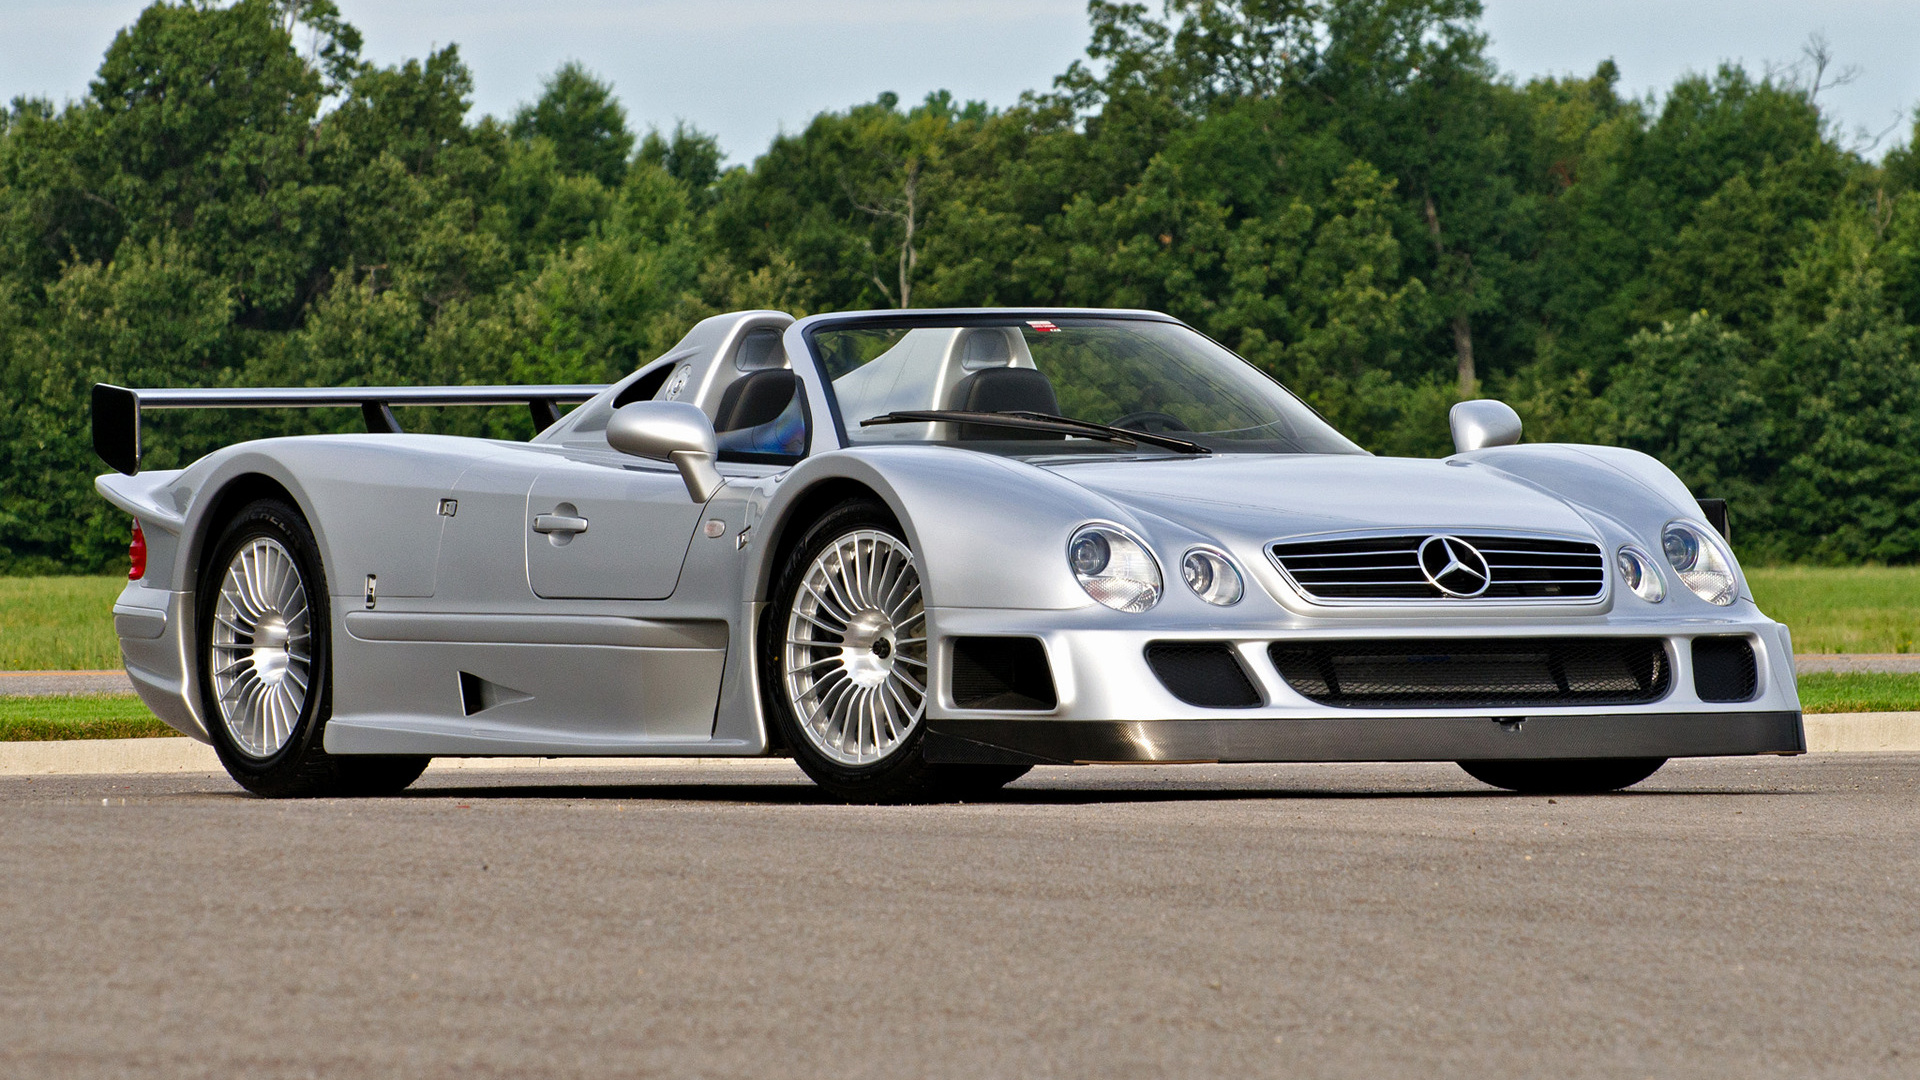 1998 Mercedes-Benz CLK GTR Roadster